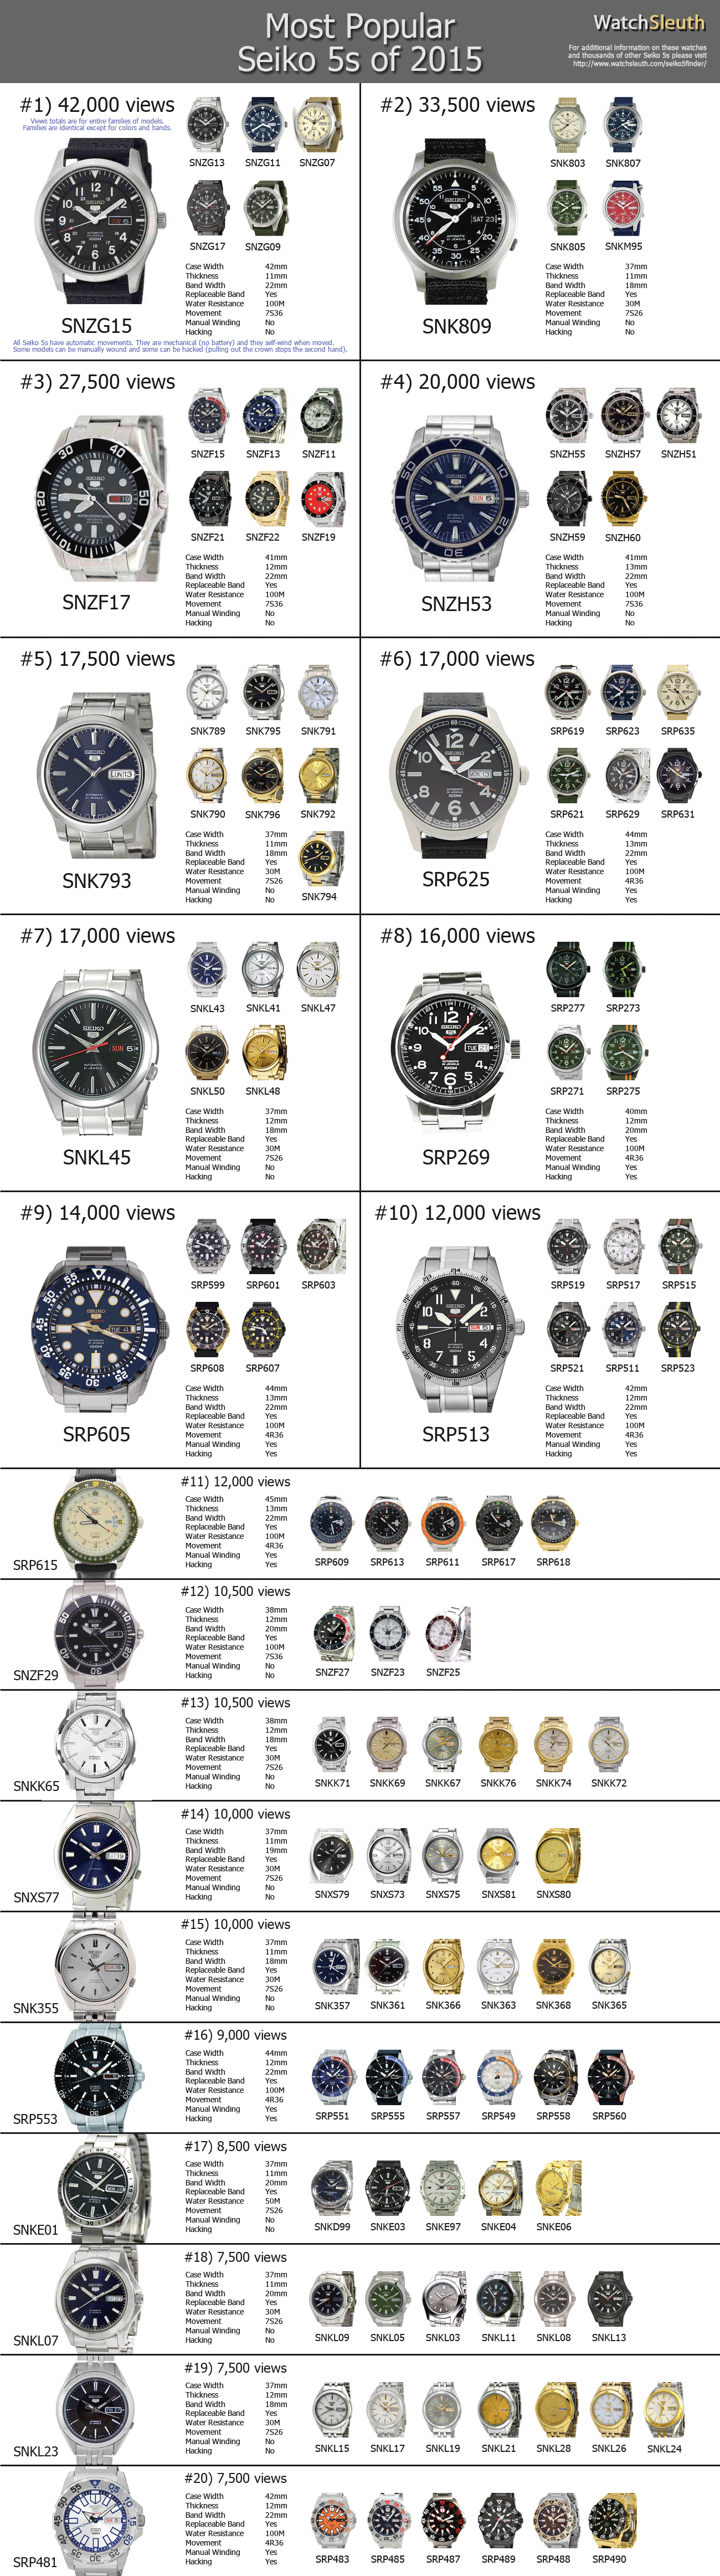 Most Popular SEIKO 5s of 2015